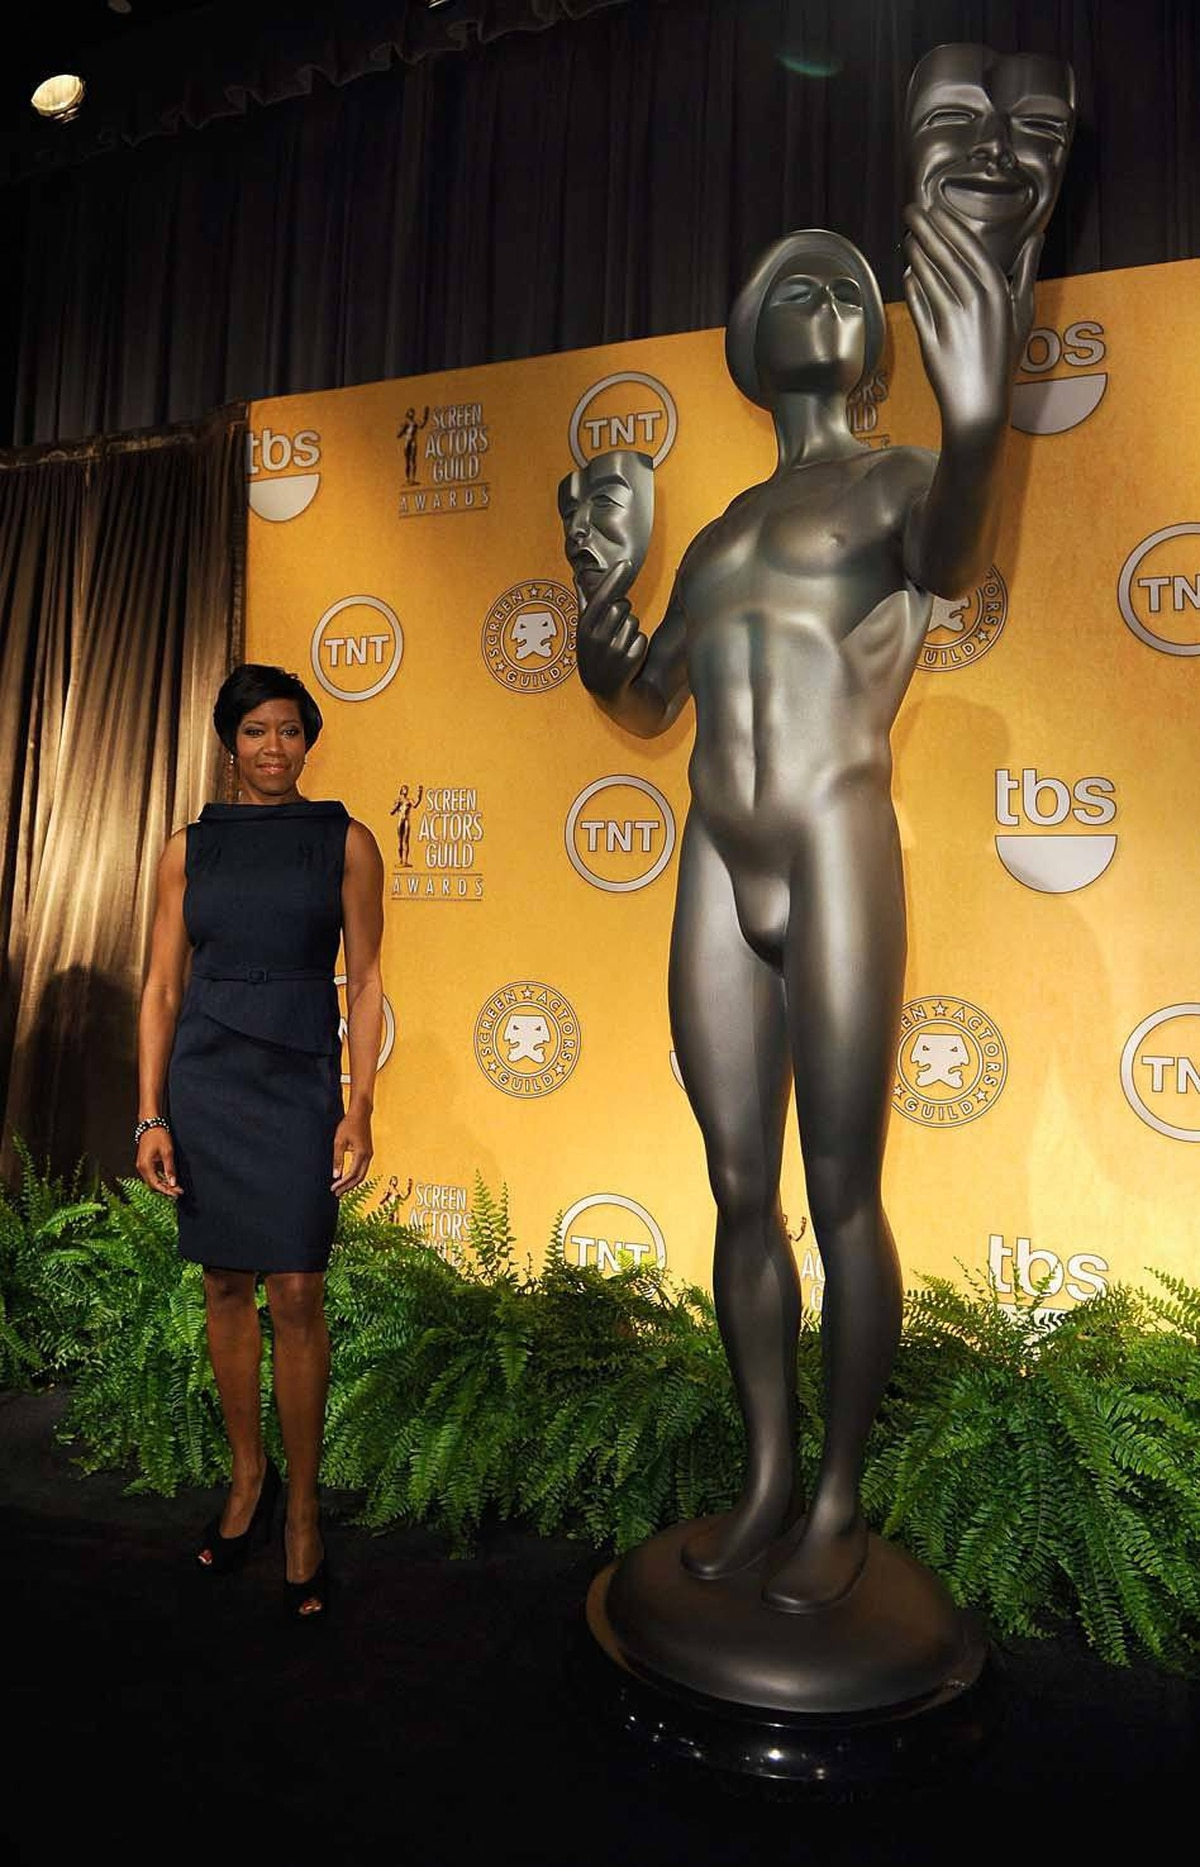 Finally, in Los Angeles last week, actress Regina King keeps a comfortable distance between herself and the giant, anatomically odd, Screen Actors Guild Award at the announcement of the SAG nominations in Los Angeles last week.